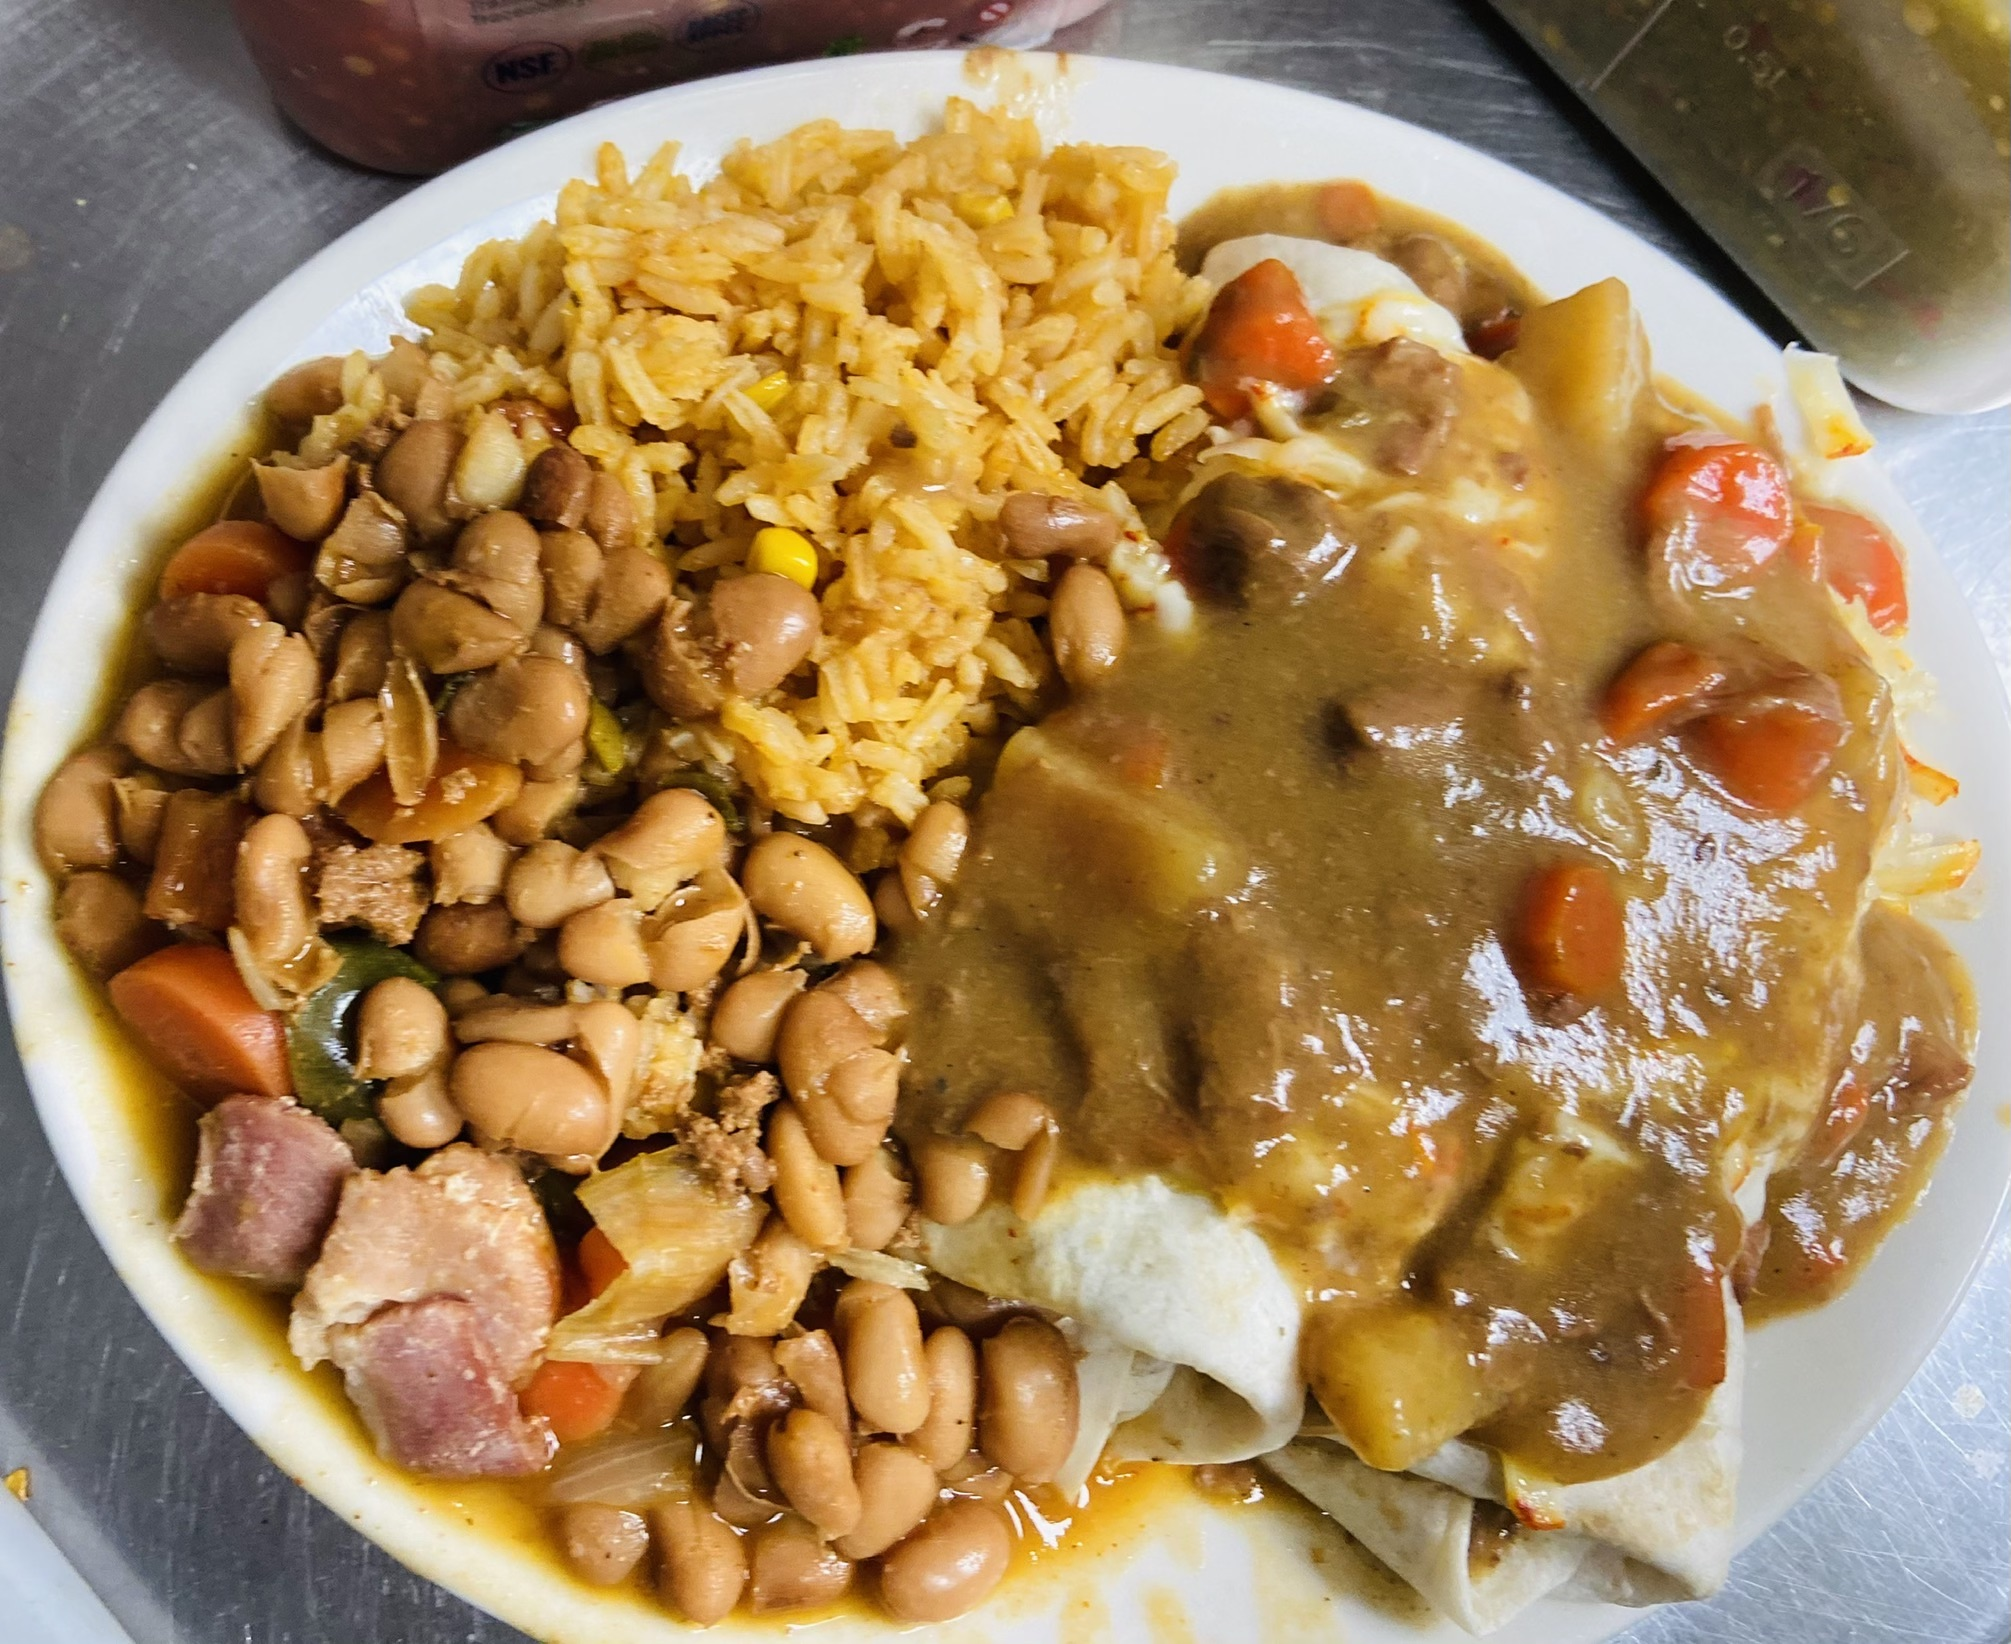 A plate with burritos covered in a brown sauce, sides of pinto beans, and rice.